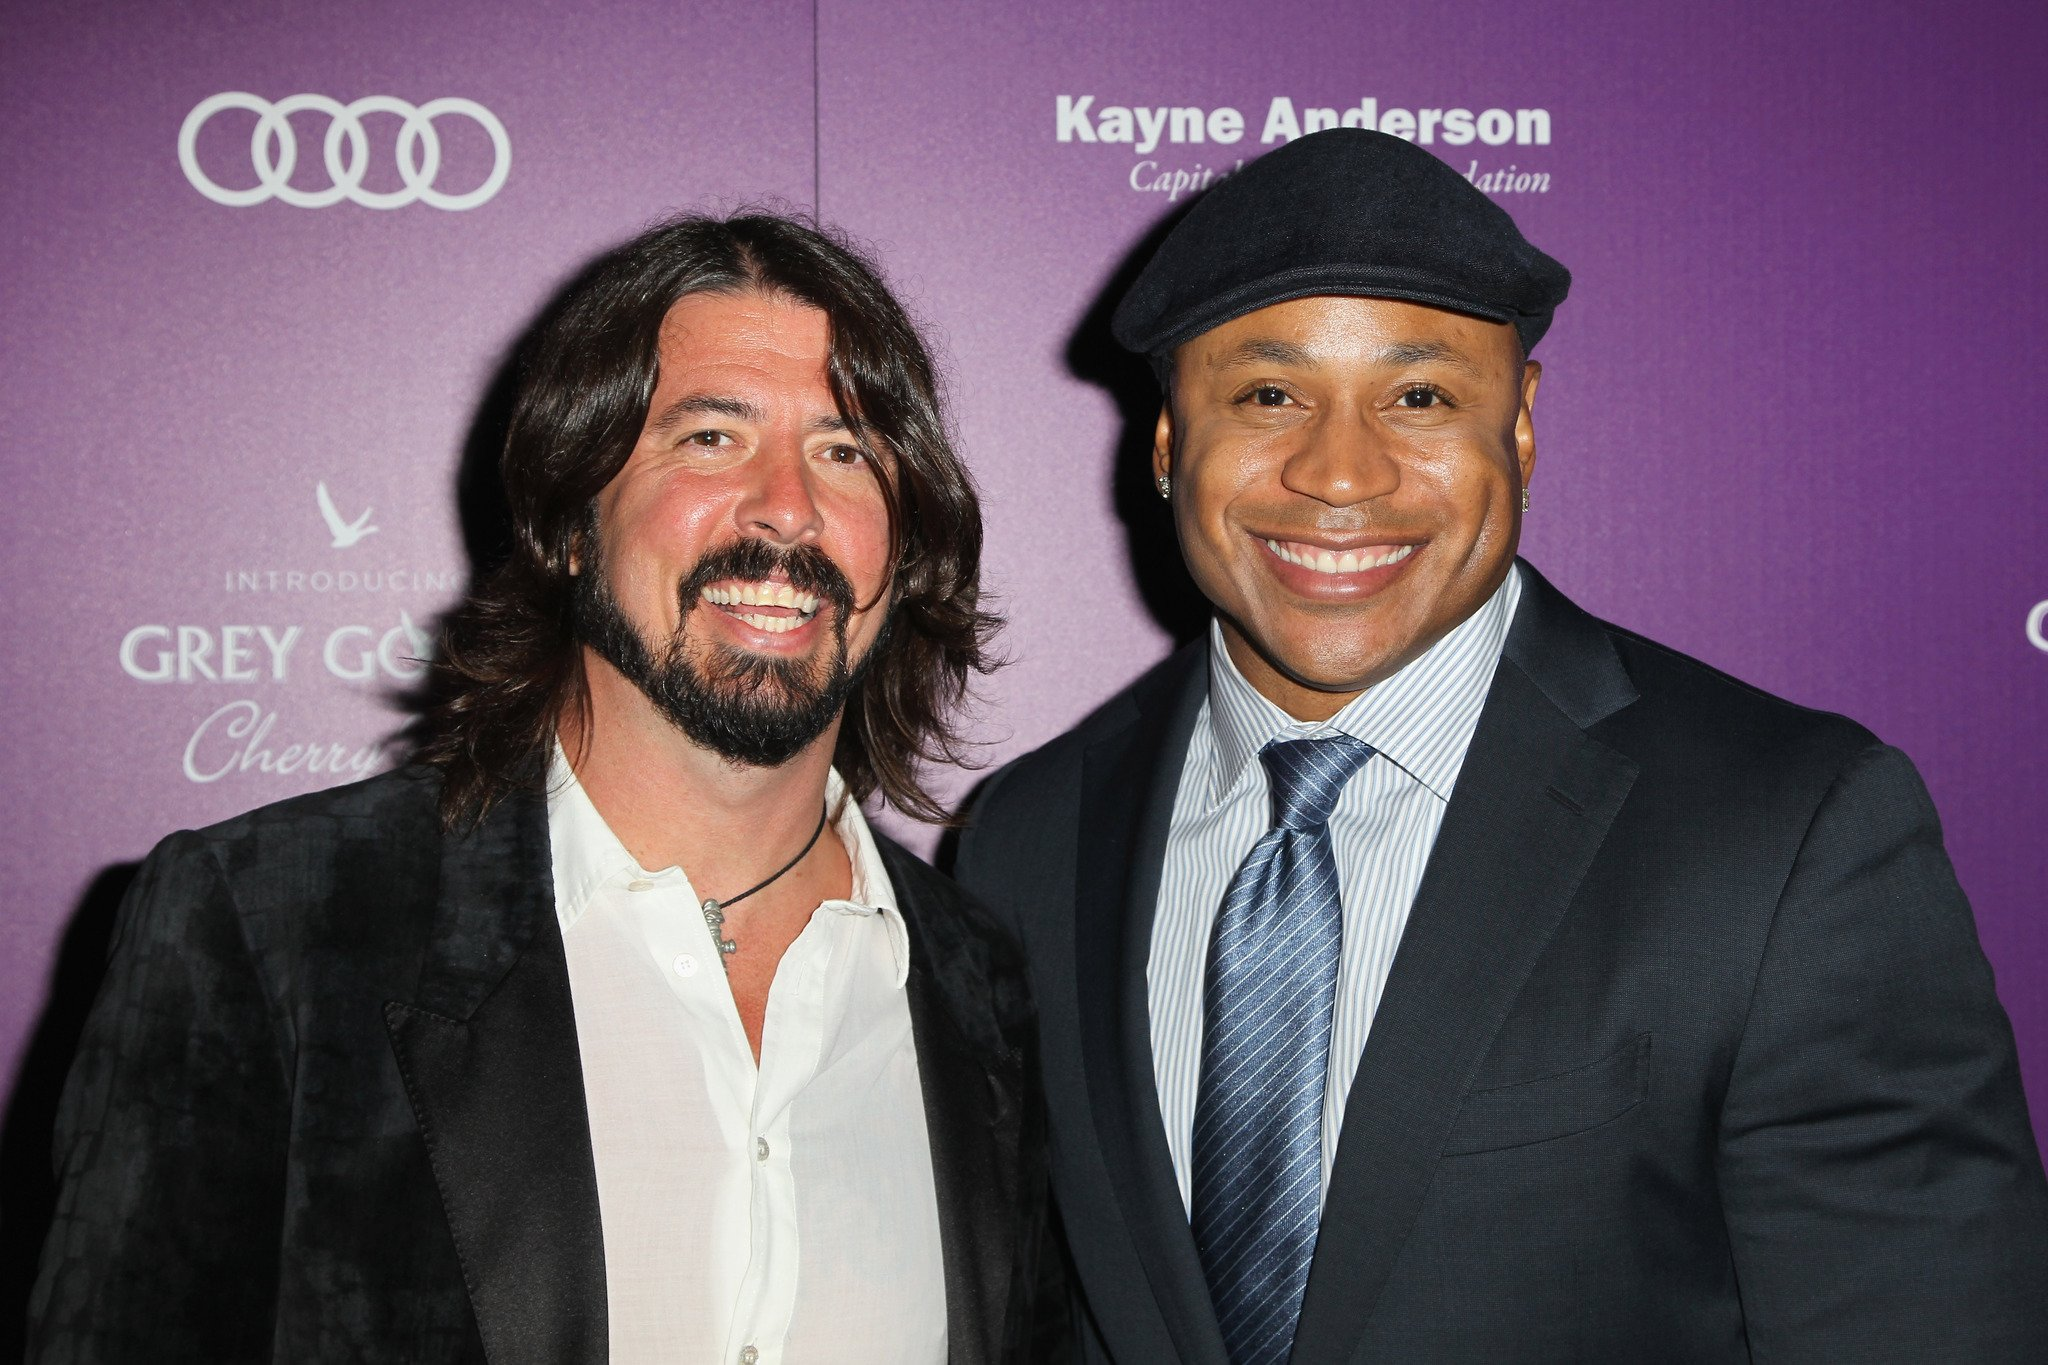 Happy birthday to 2 of our favourite dudes: Dave Grohl (48) & LL Cool J (49)!